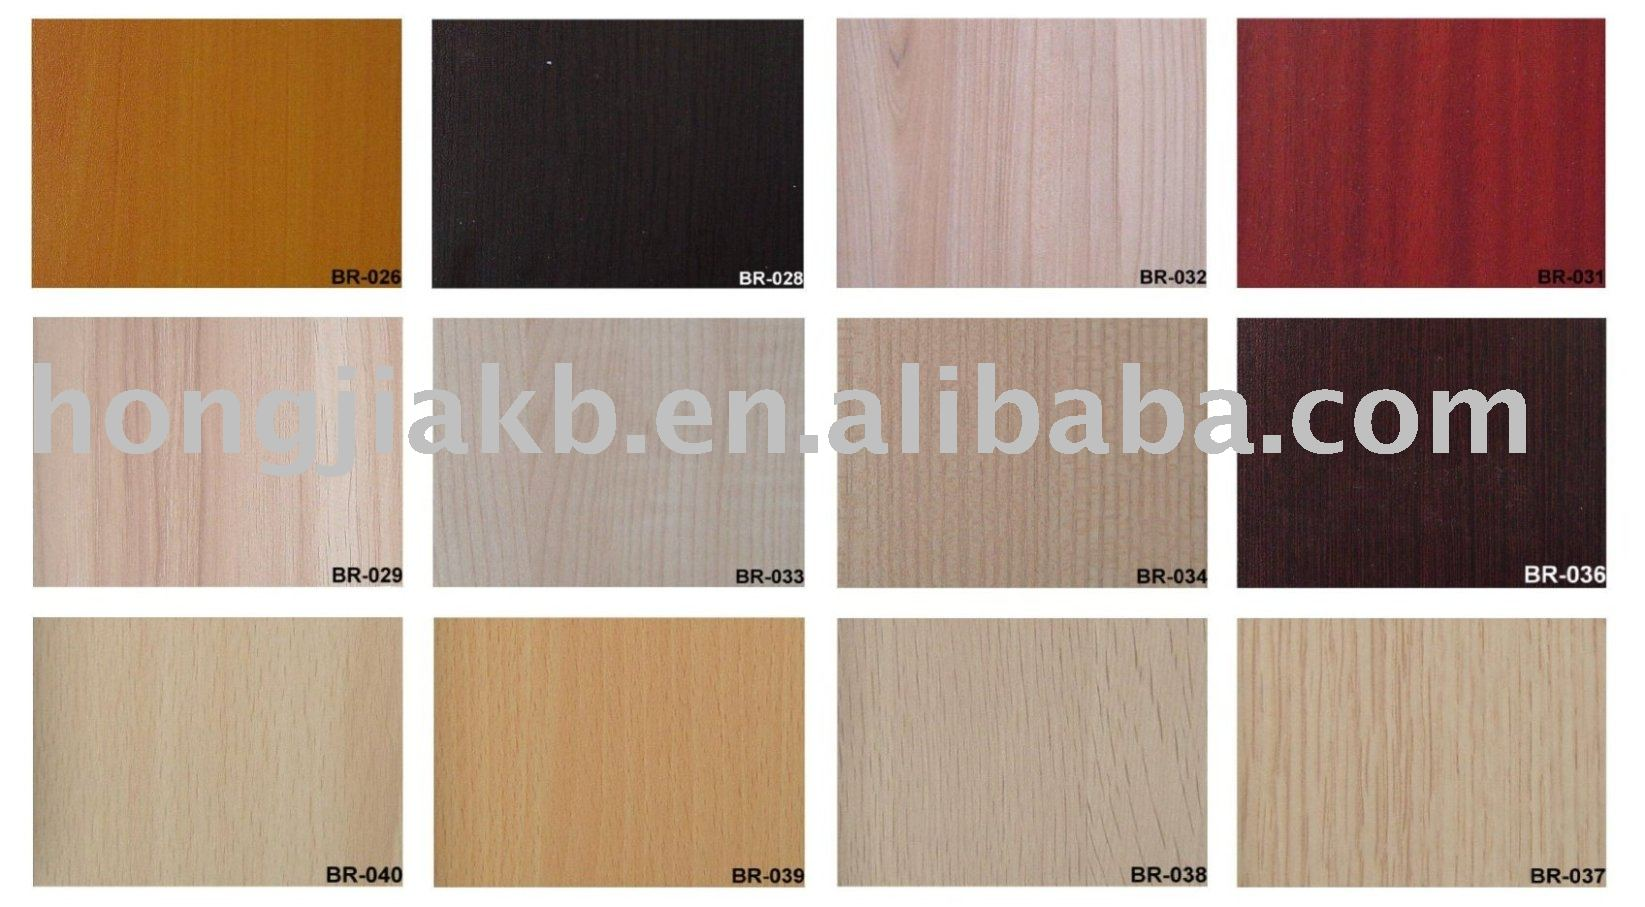 Melamine Cabinet Colors Images Galleries With A Bite